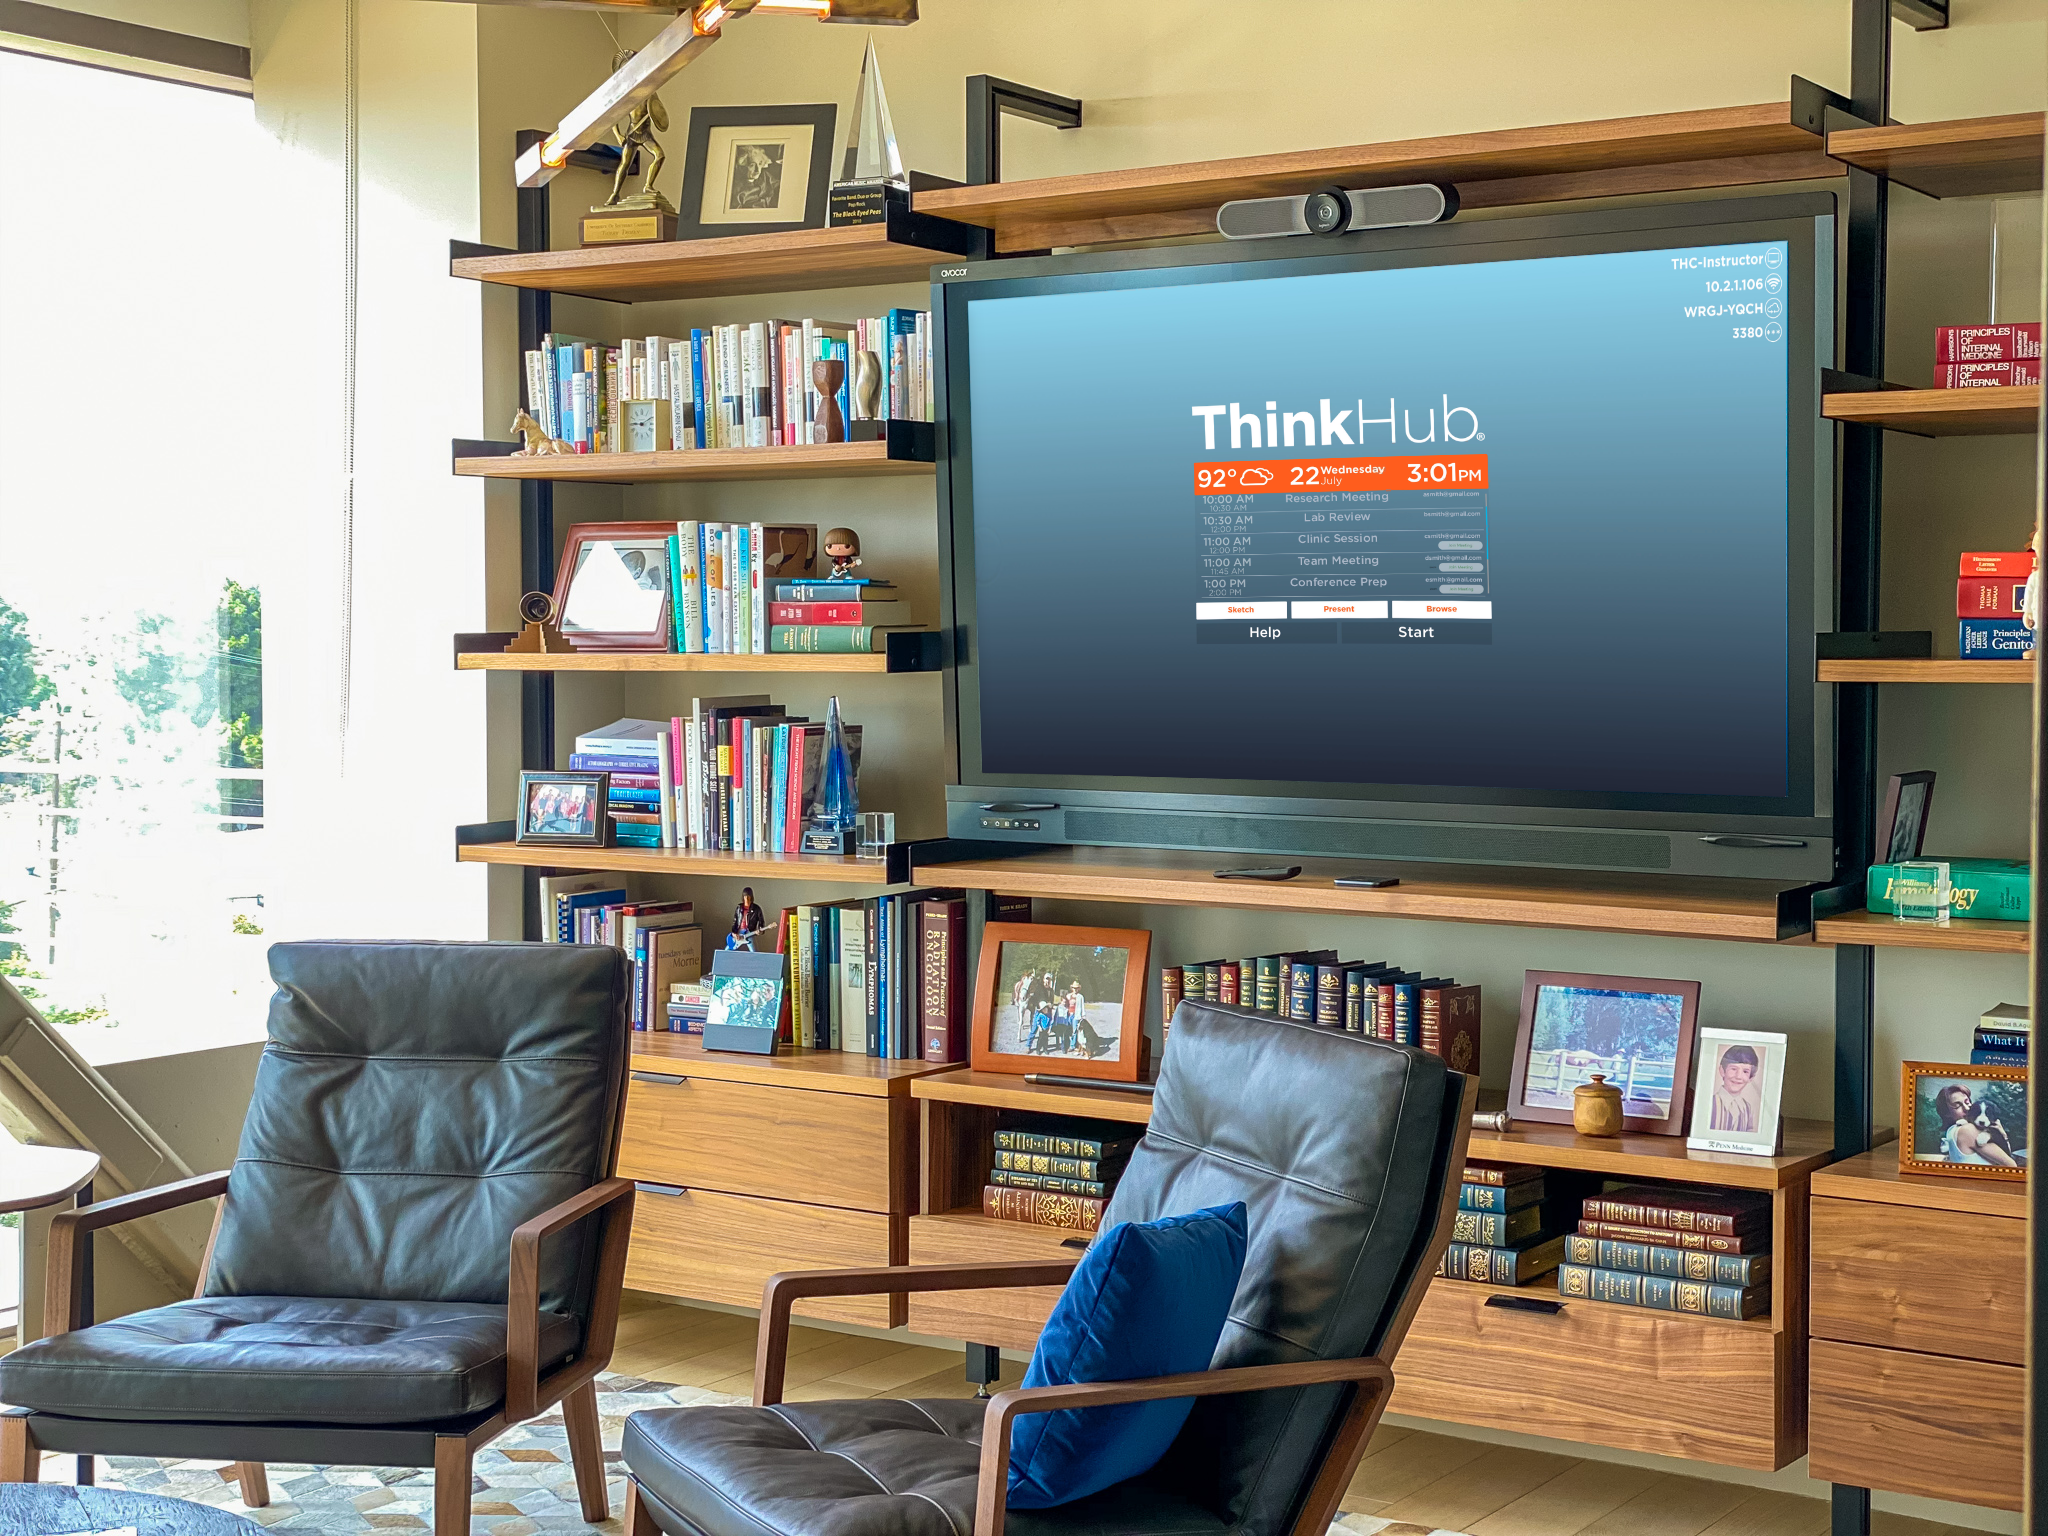 T1V-ThinkHub-USC-Ellison-Institute-Personal-Office-Meeting-Treehouse-ThinkHub-Collaboration-Interactive-Software-CA-2020